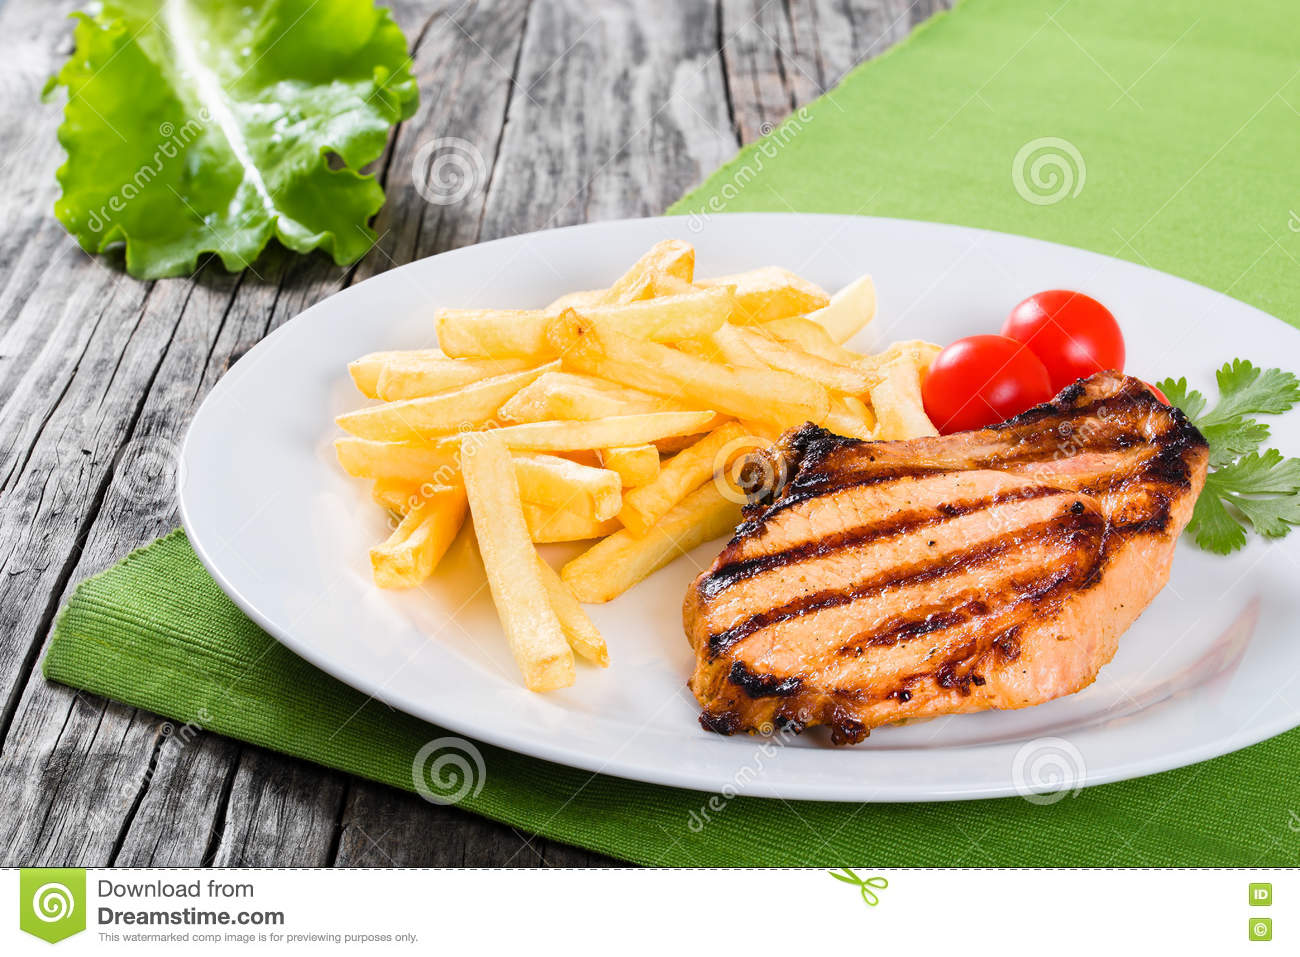 Grilled Pork Chops On A White Dish With French Fries Stock Image ...